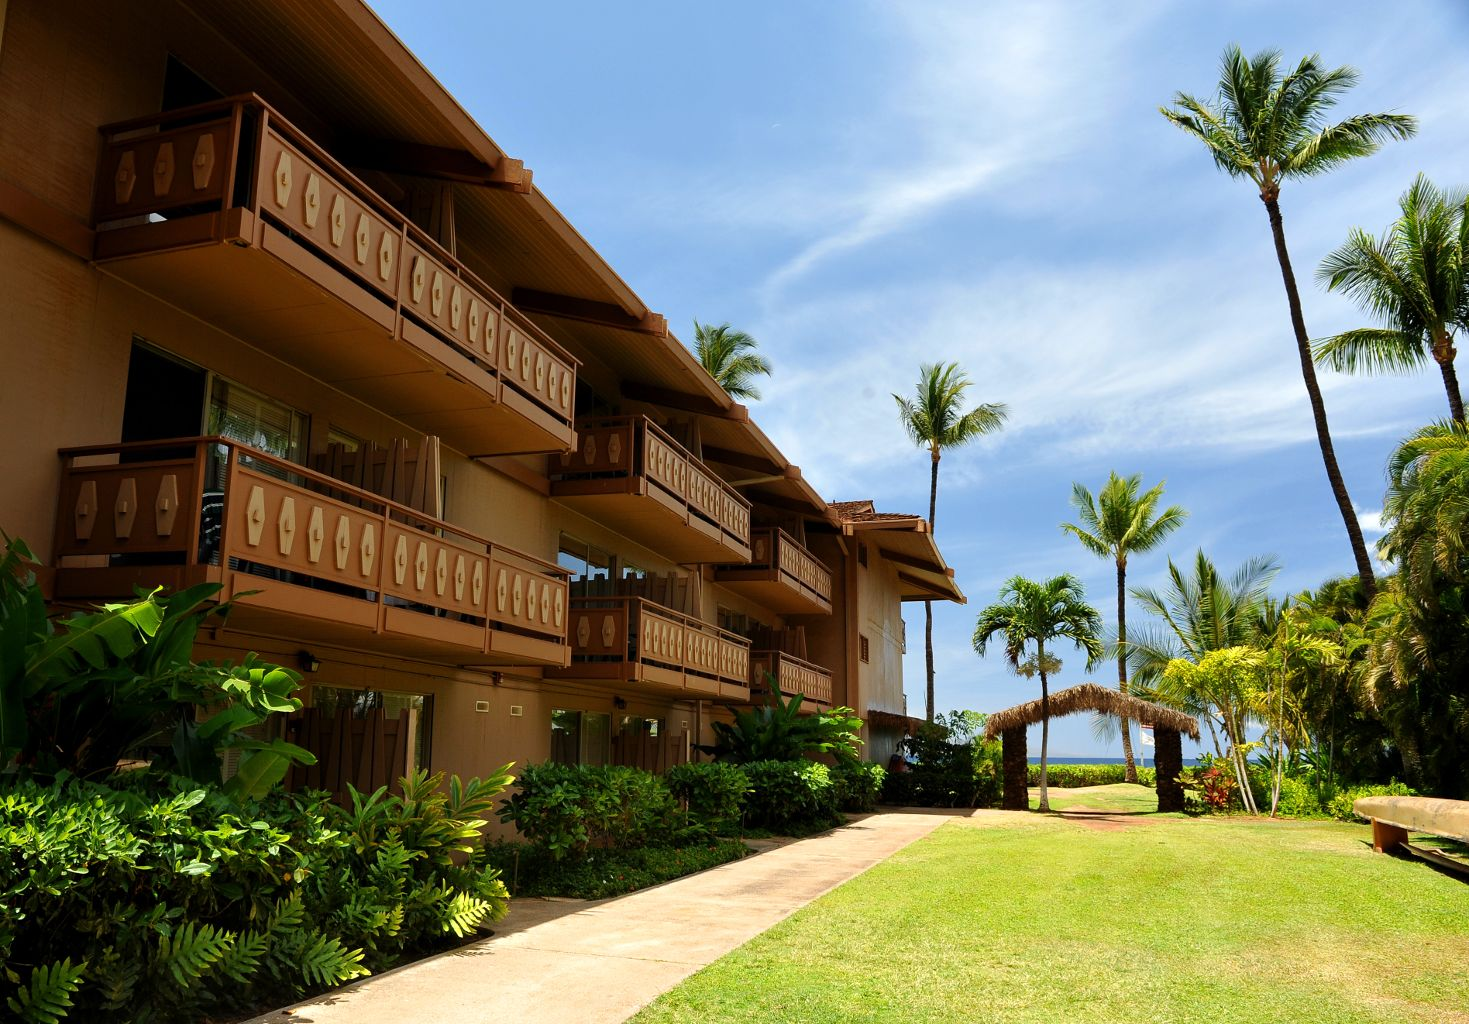 Maui All Inclusive Ocean View Hotels Resorts